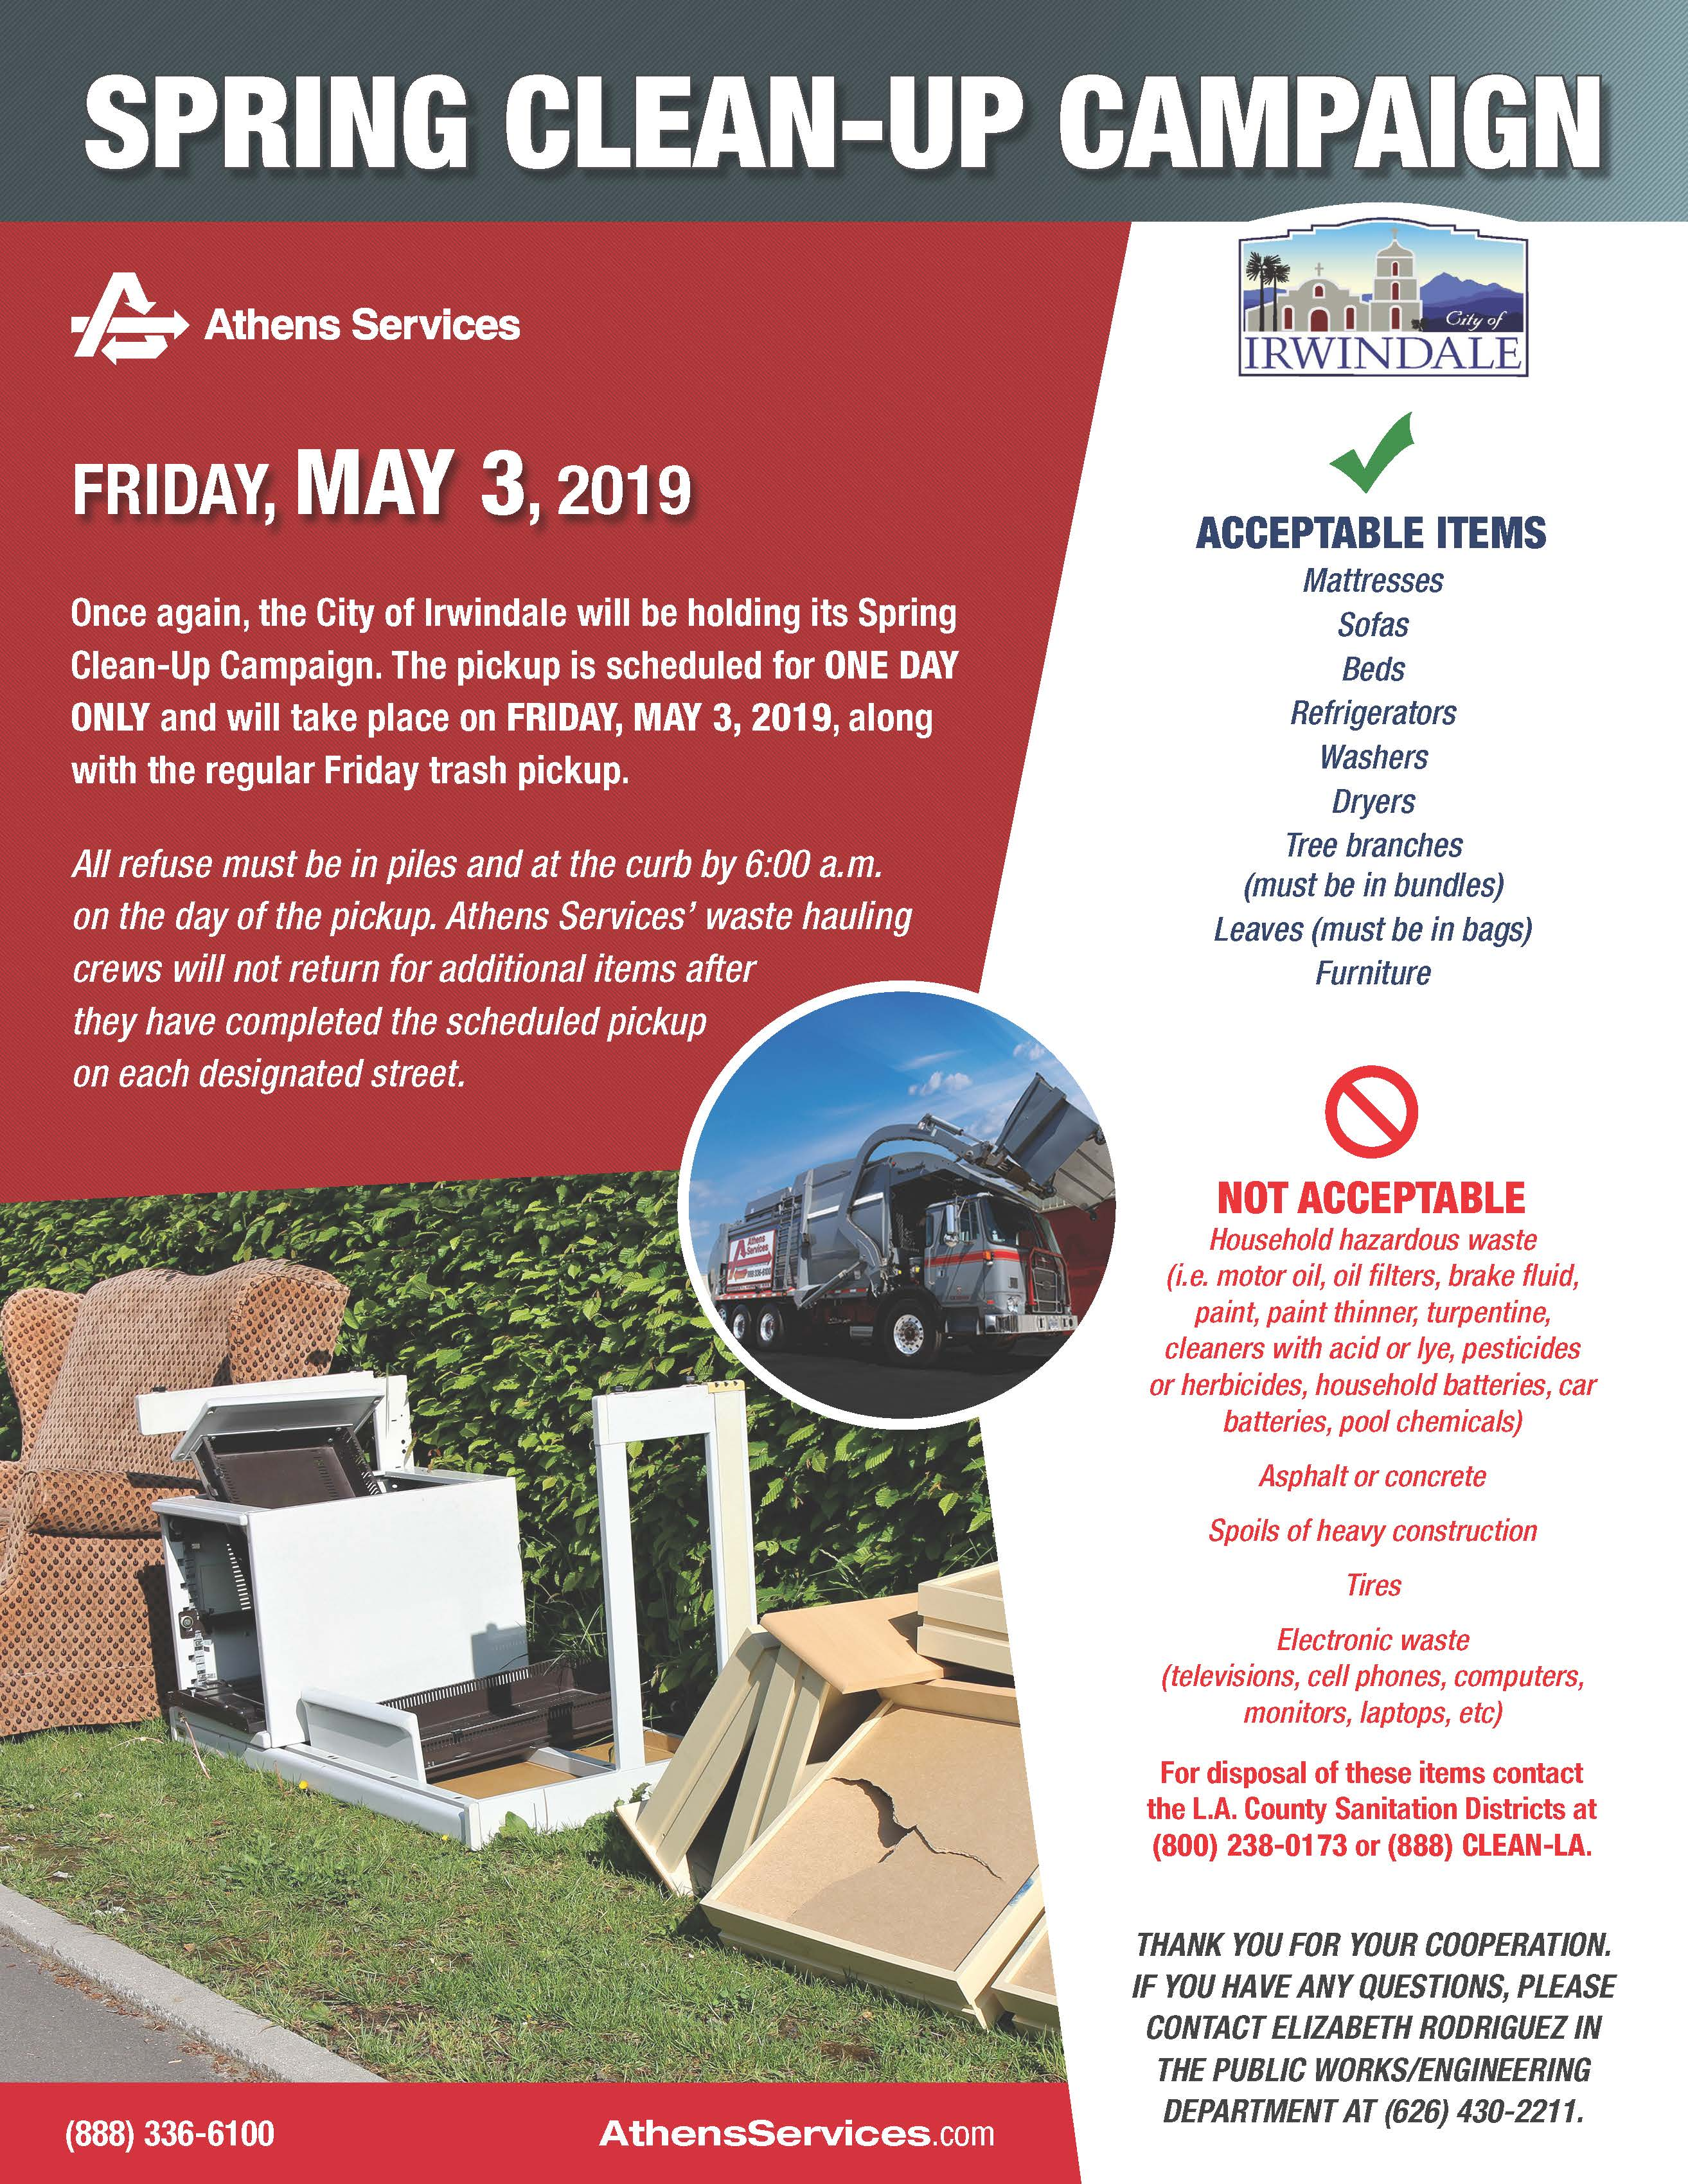 5-3-2019 Athens - Irwindale Spring Clean Up Campaign Flyer_Page_1.jpg